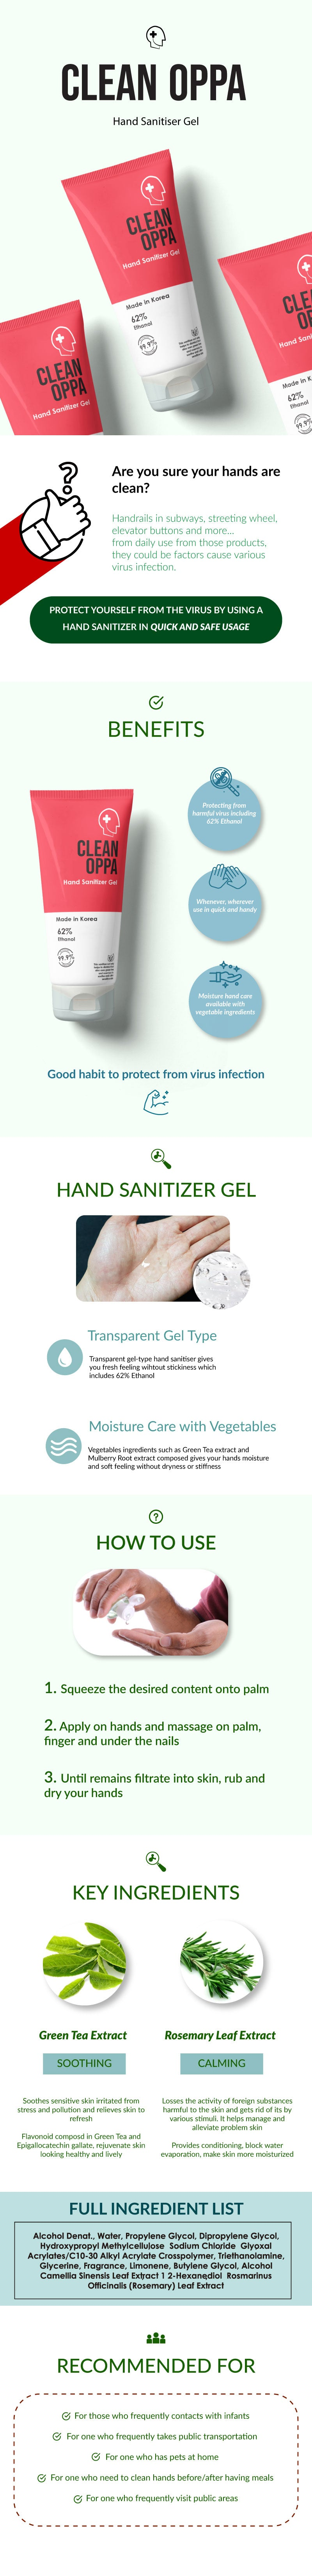 Clean Oppa Hand Sanitizer Gel made with 62% Ethanol Alcohol. Disinfects and keeps your hands and body clean! Besides disinfecting, it contains rosemary and Green Tea extracts to soothe and calm your skin too!